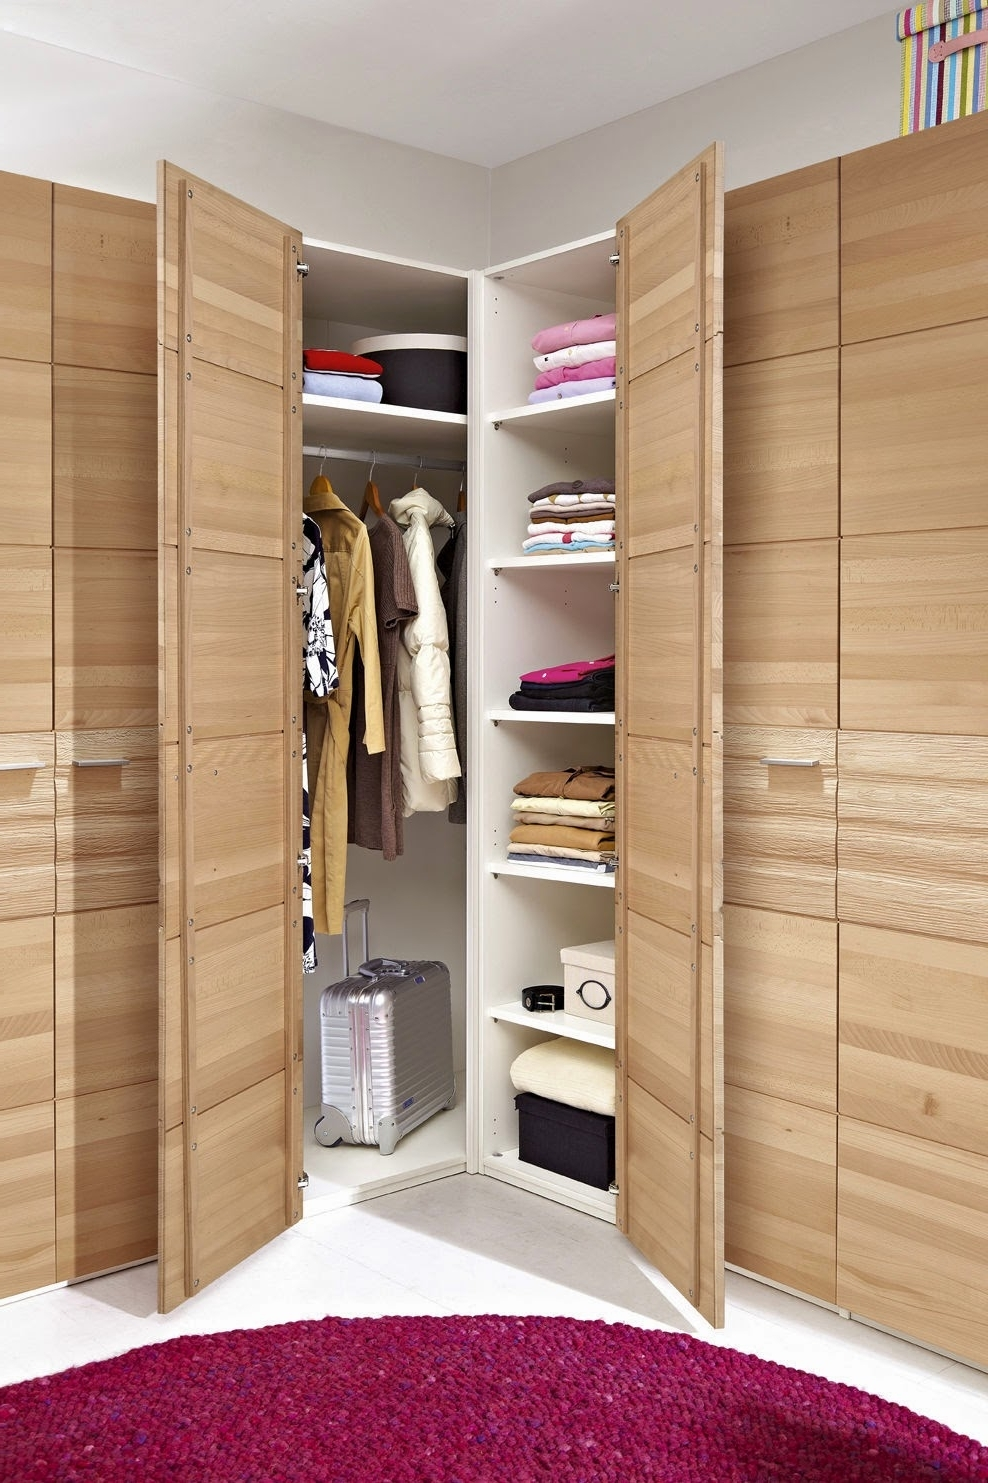 Latest The Corner Wardrobe – Your Spacious Solution For The Bedroom – My With Regard To Small Corner Wardrobes (View 3 of 15)